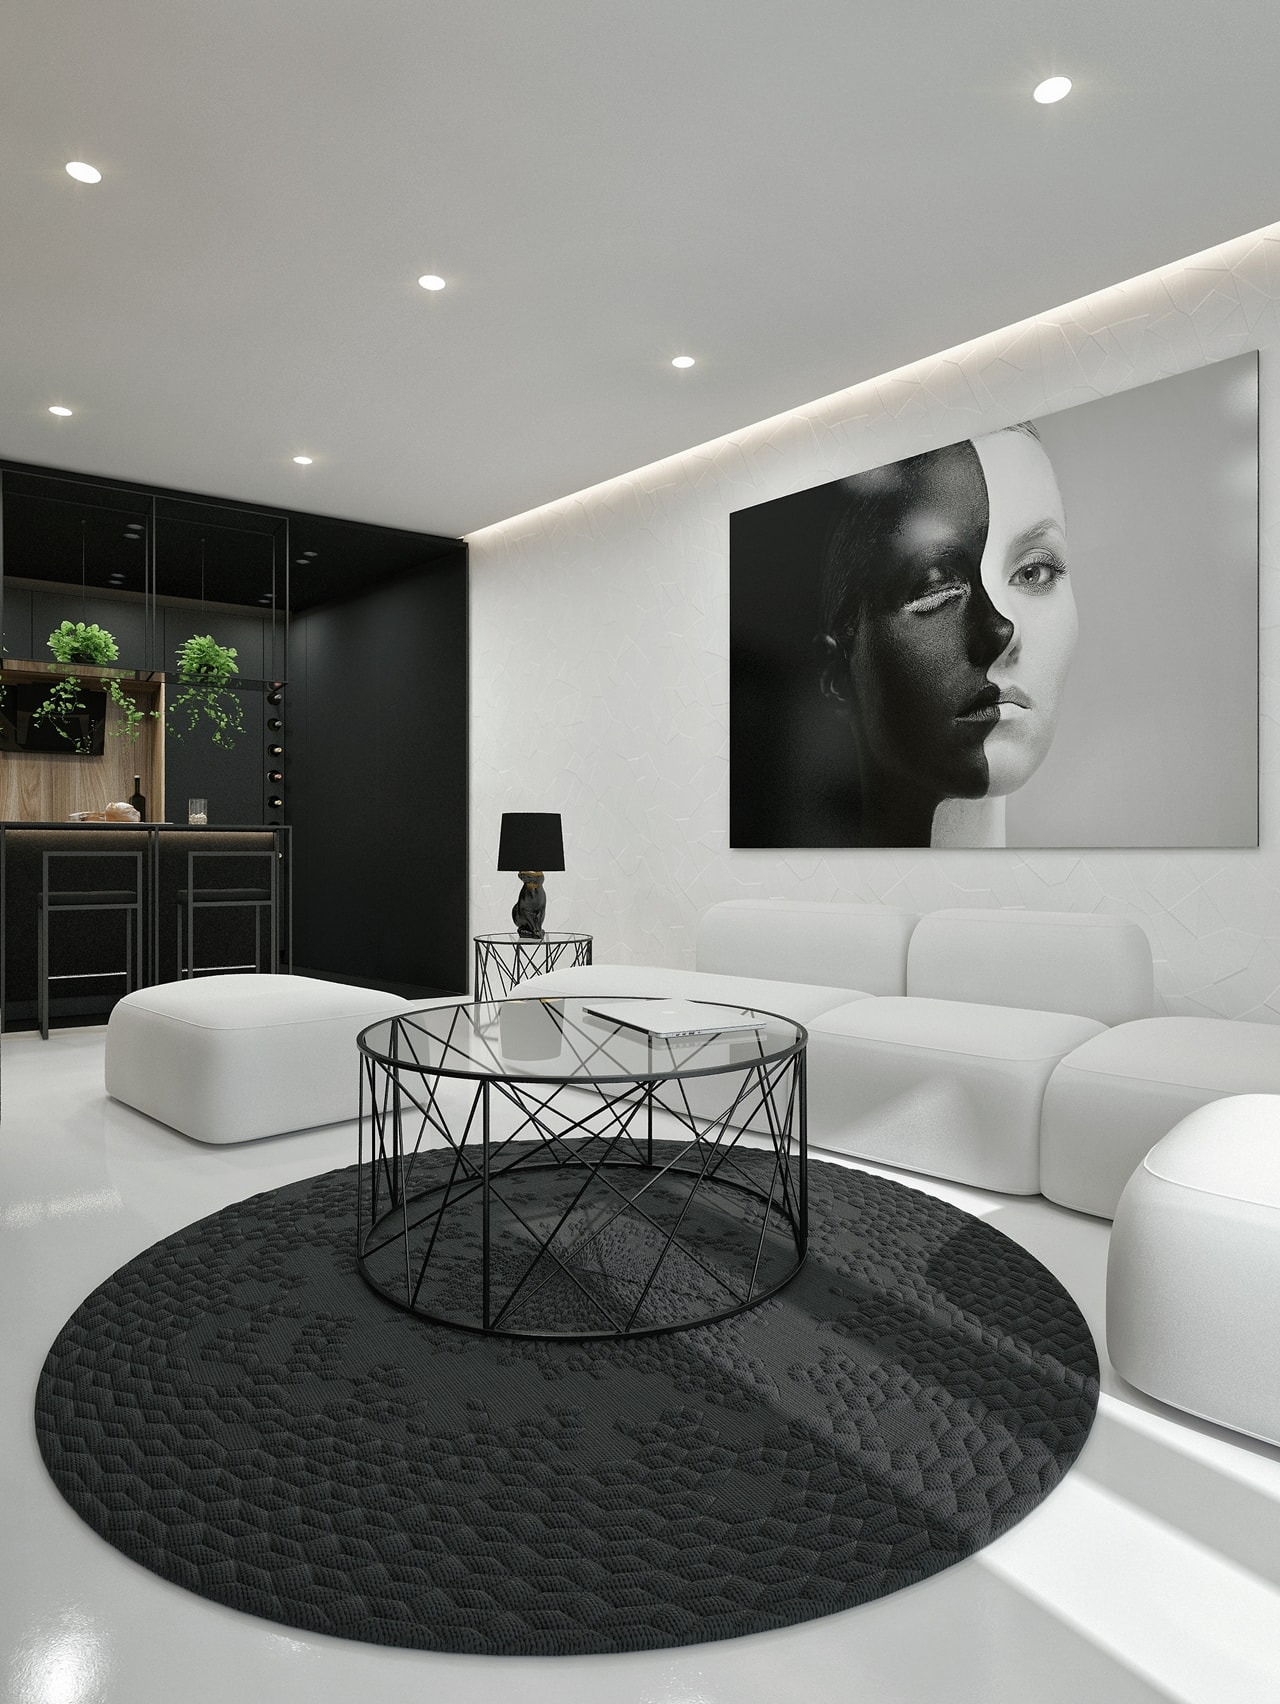 Black And White Interior Design Ideas Modern Apartment by ID White on Architecture Beast 03 min